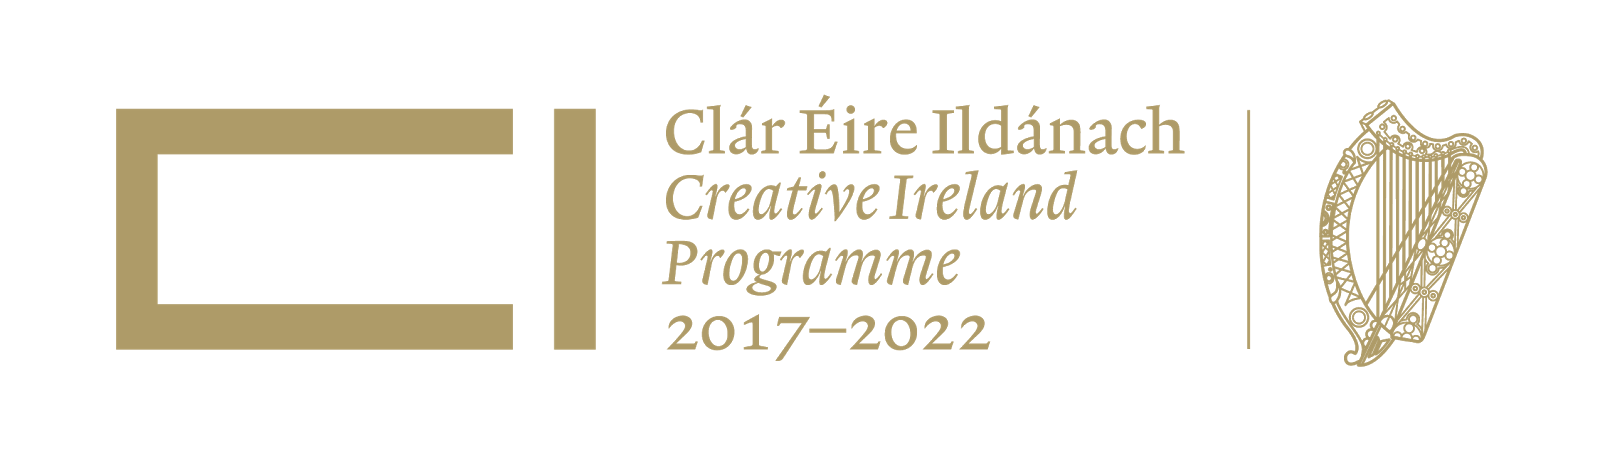 45 Community Projects Approved under Cork County Council Creative Ireland Initiative 2018